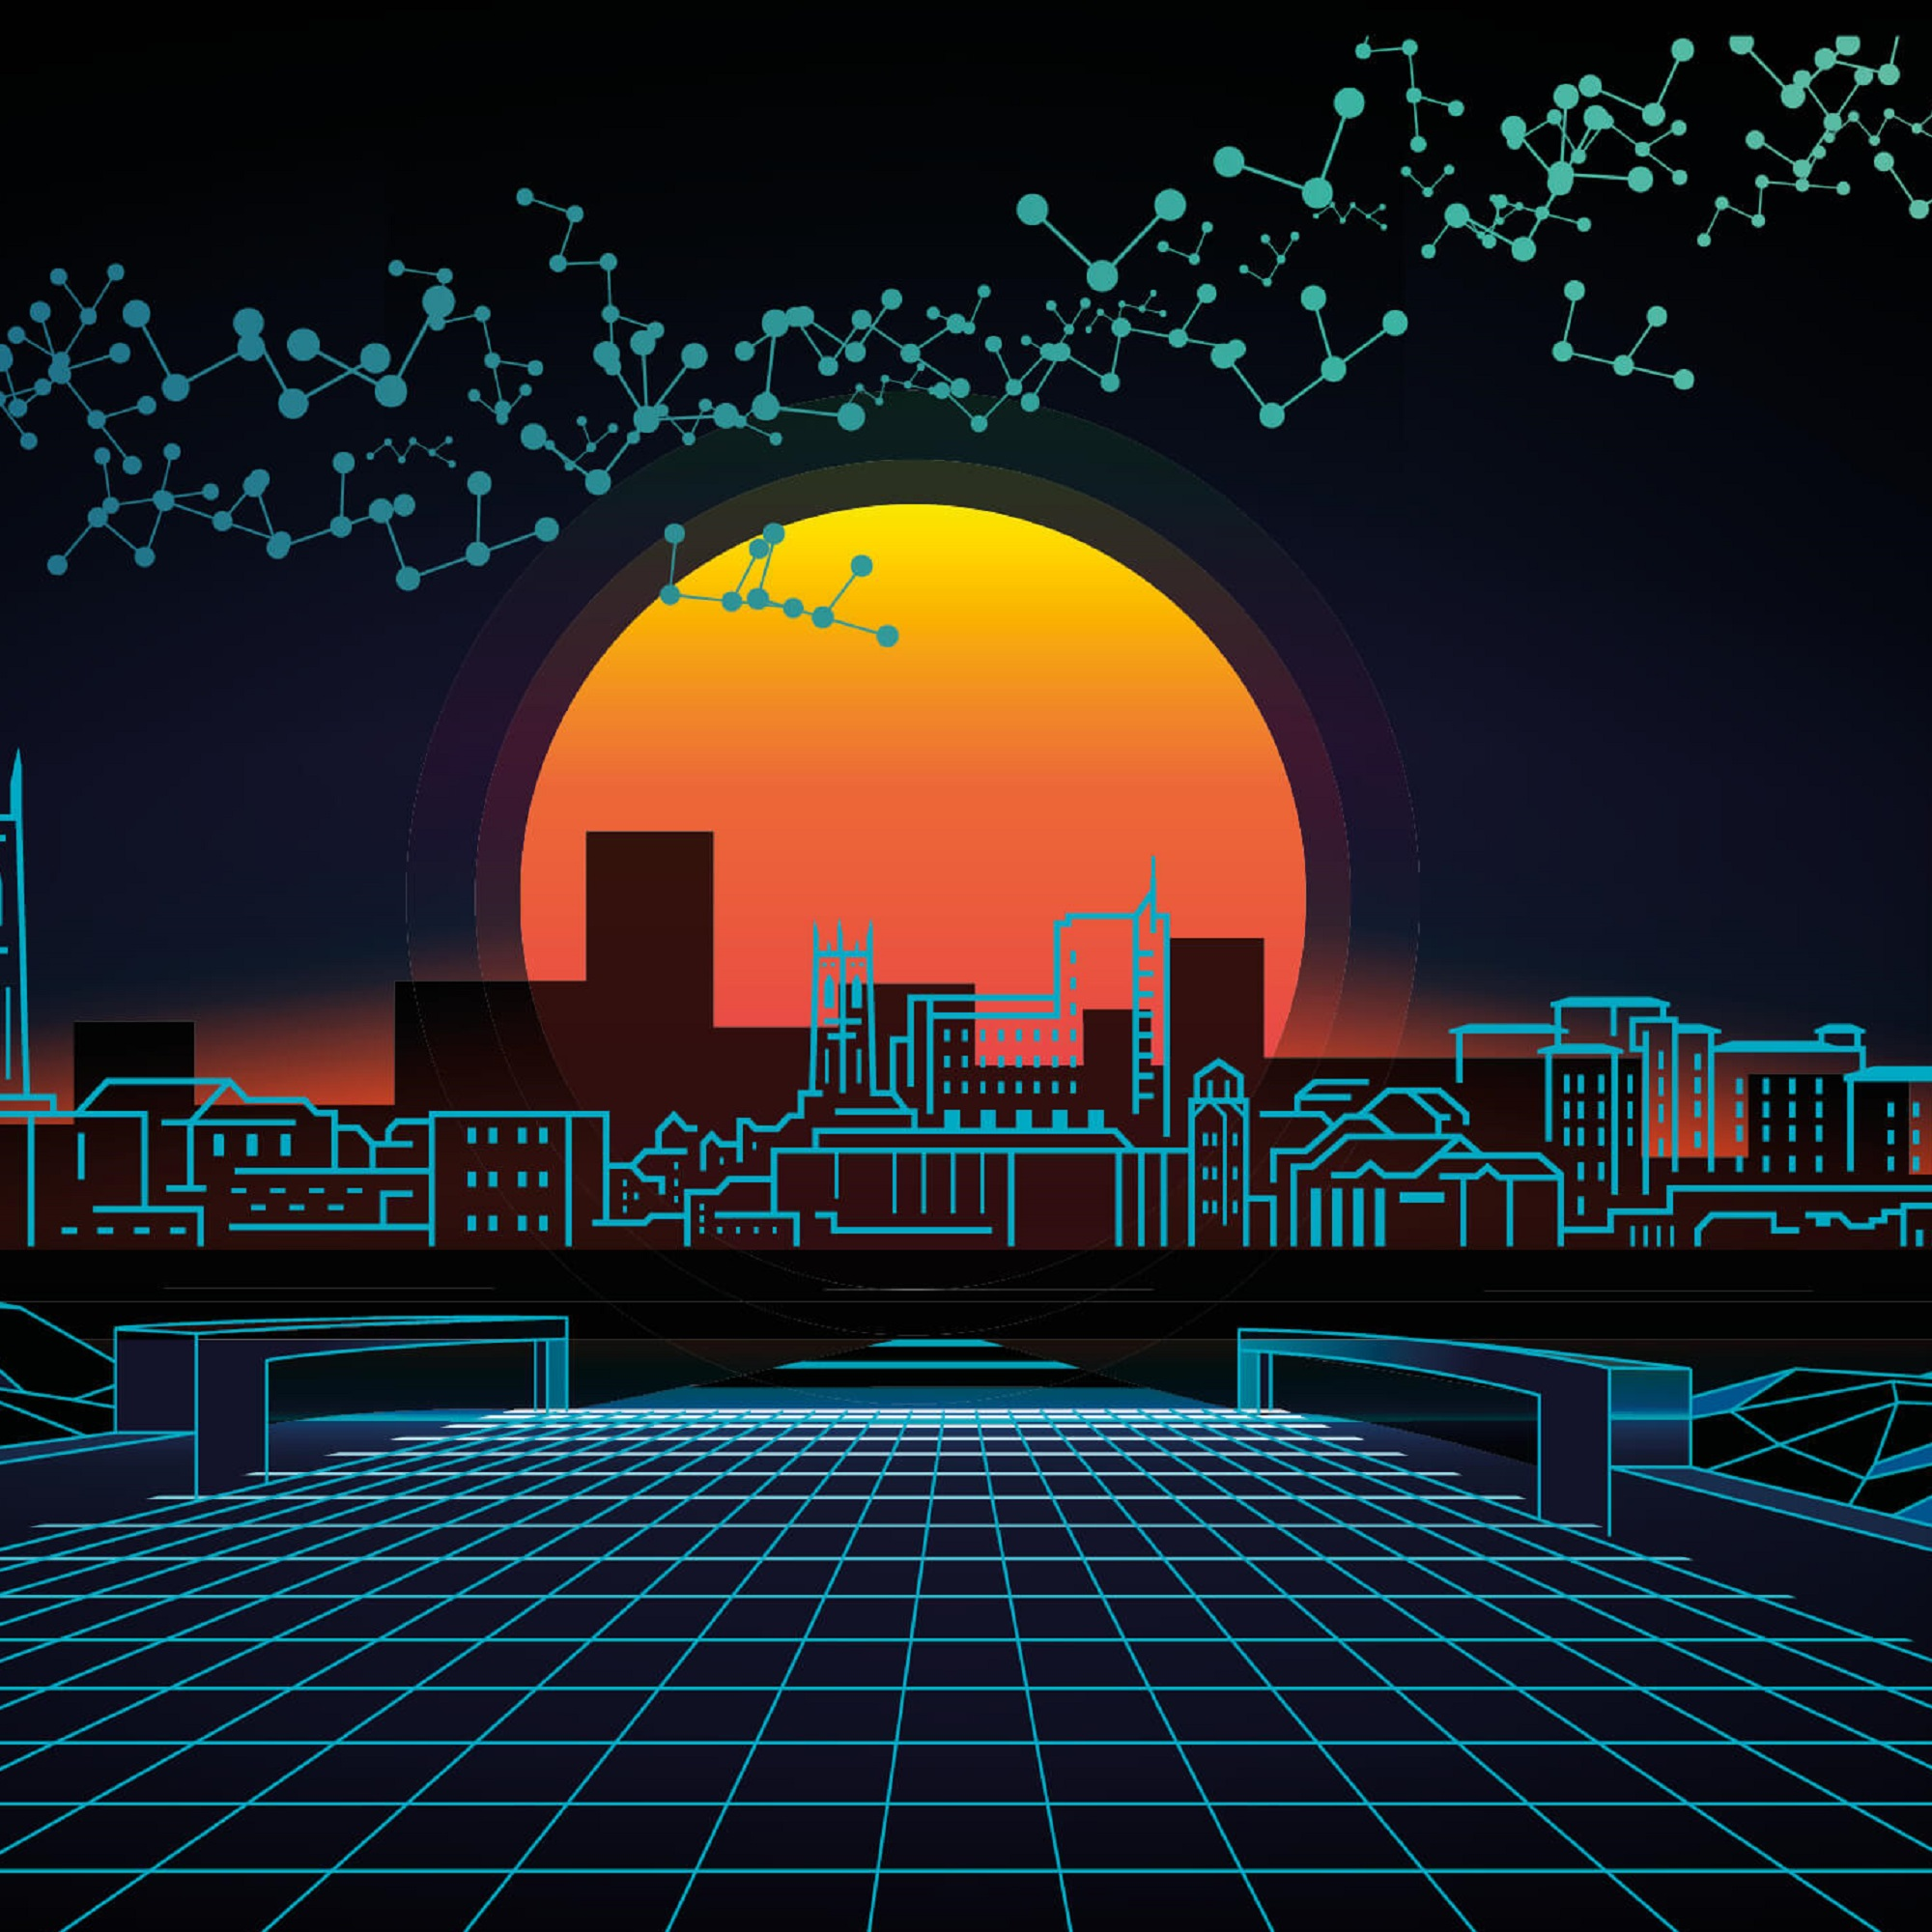 Illustration of a setting sun over a gridded image of the Derby cityscape.